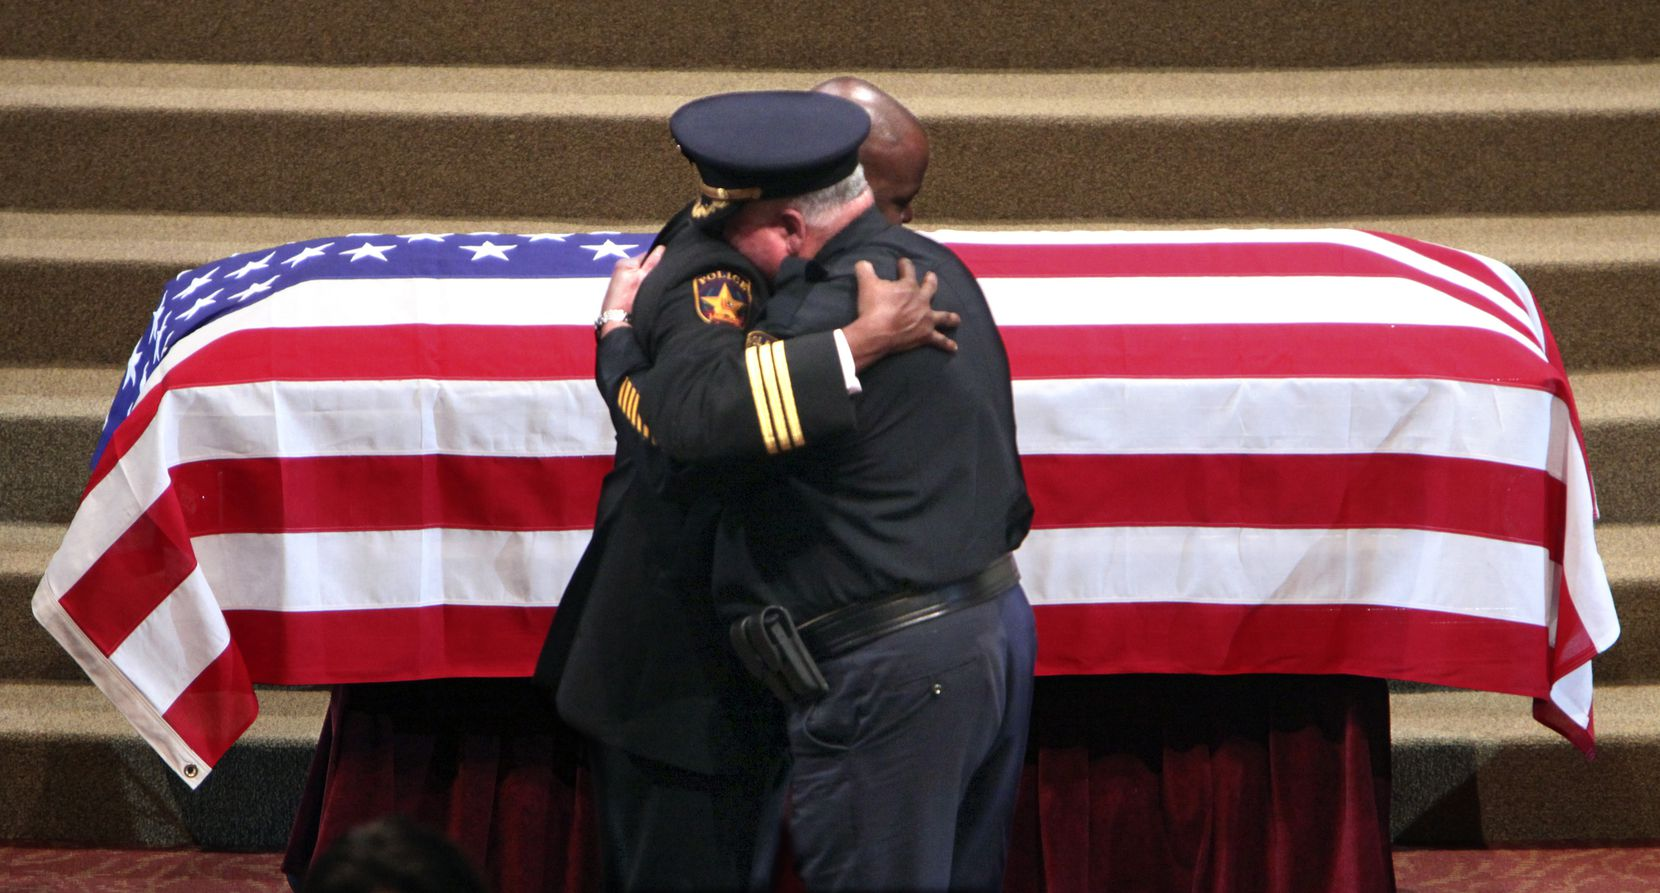 Lancaster Police Chief Keith Humphrey (left) and assistant chief Larry Flatt embraced at the conclusion of funeral services for Lancaster police Officer Craig Shaw at the Inspiring Body of Christ Church in Dallas in June 2010. Officer Shaw was shot and killed by David Brown Jr., son of Dallas Police Chief David Brown.